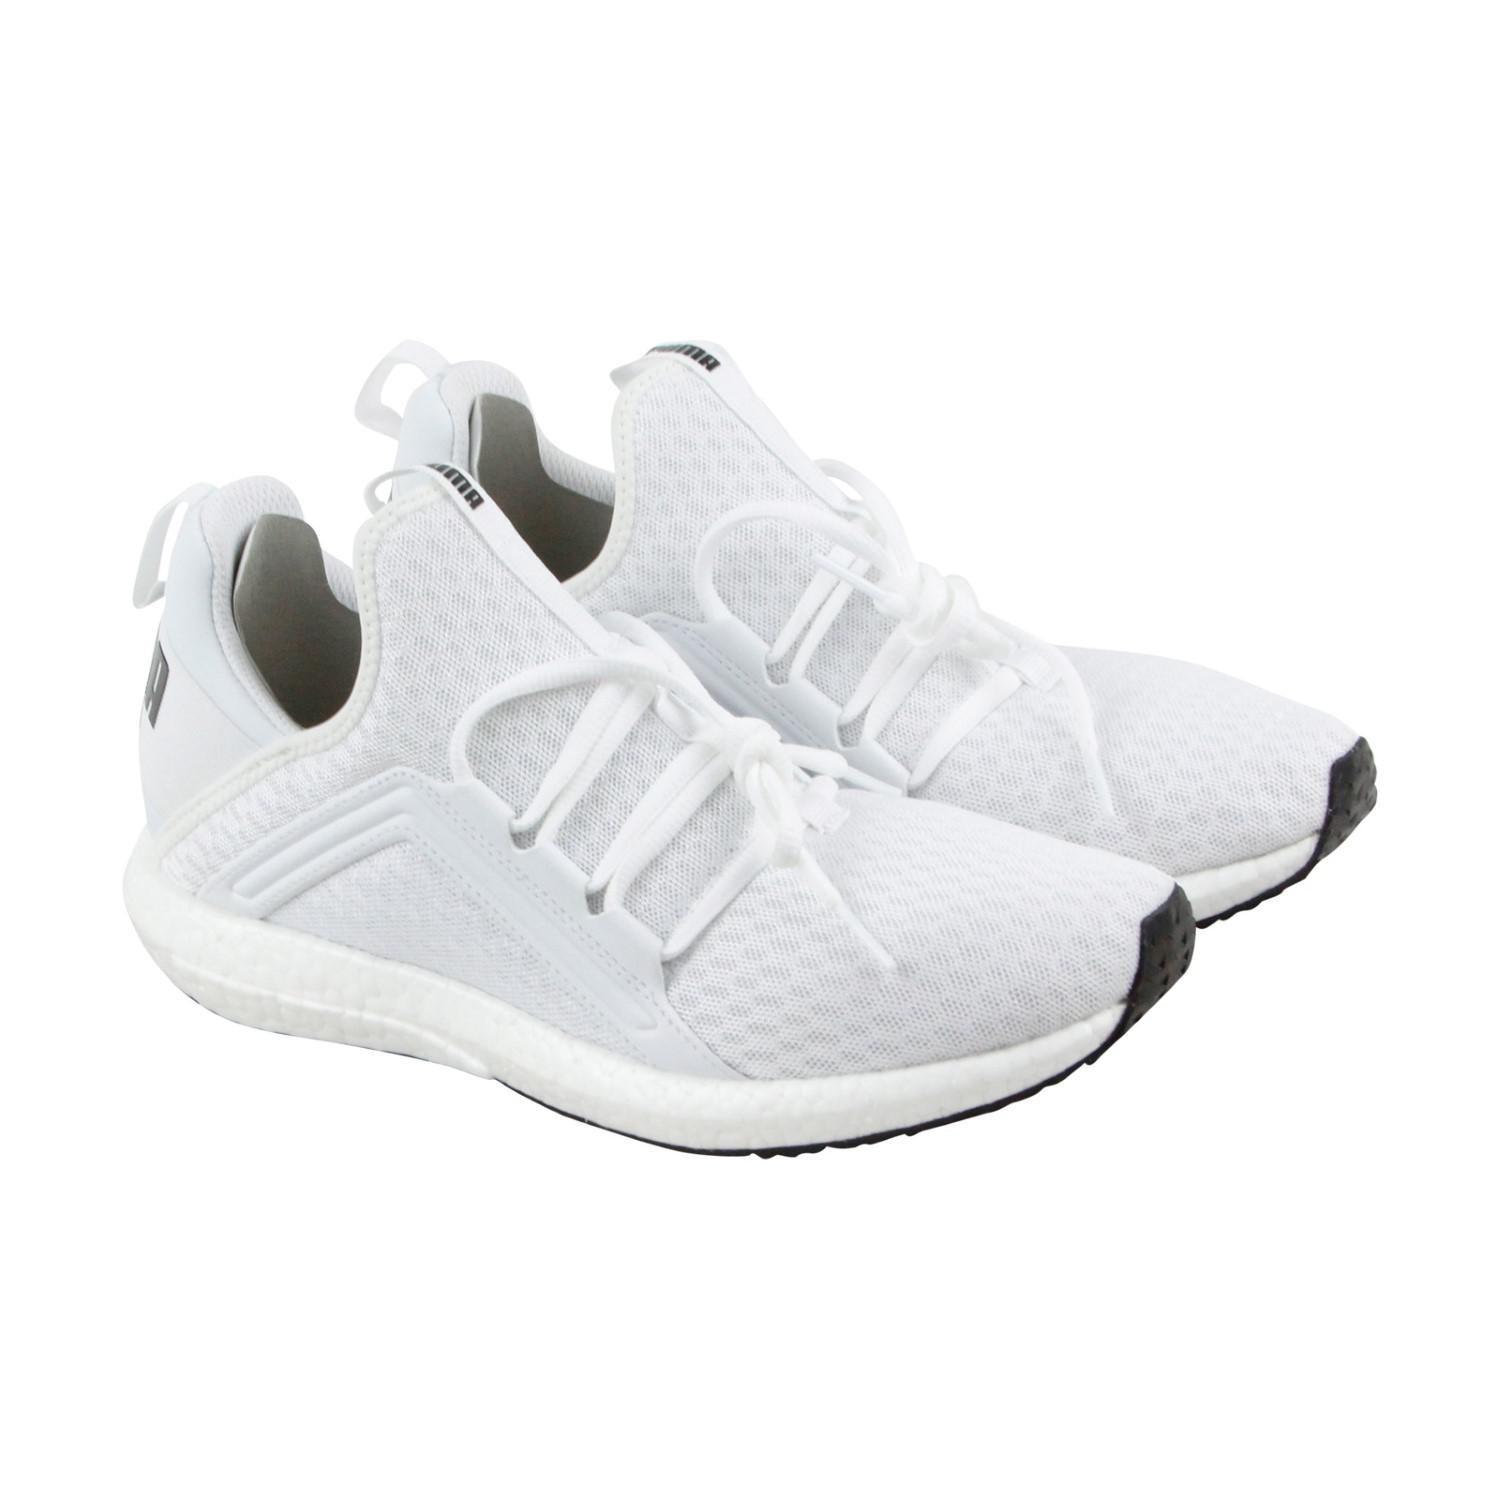 511dc3f9ff6 Lyst - Puma Mega Nrgy Black Athletic Running Shoes in White for Men